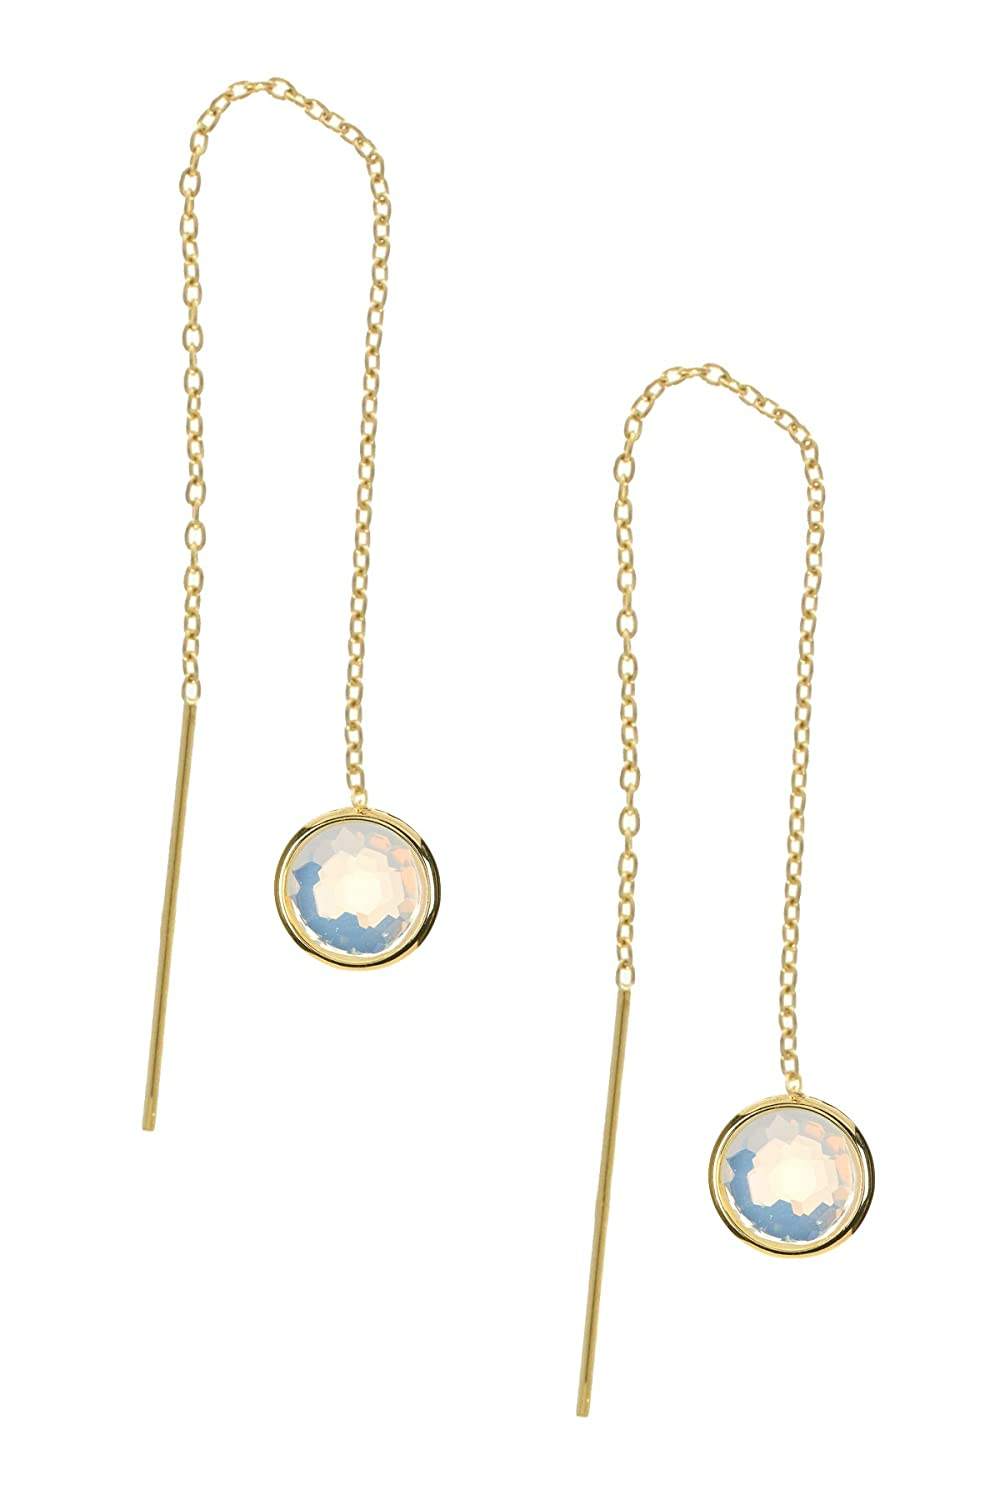 Moonstone Round Pull Through Wholesale Gemstone Fashion Jewelry Drop Earrings